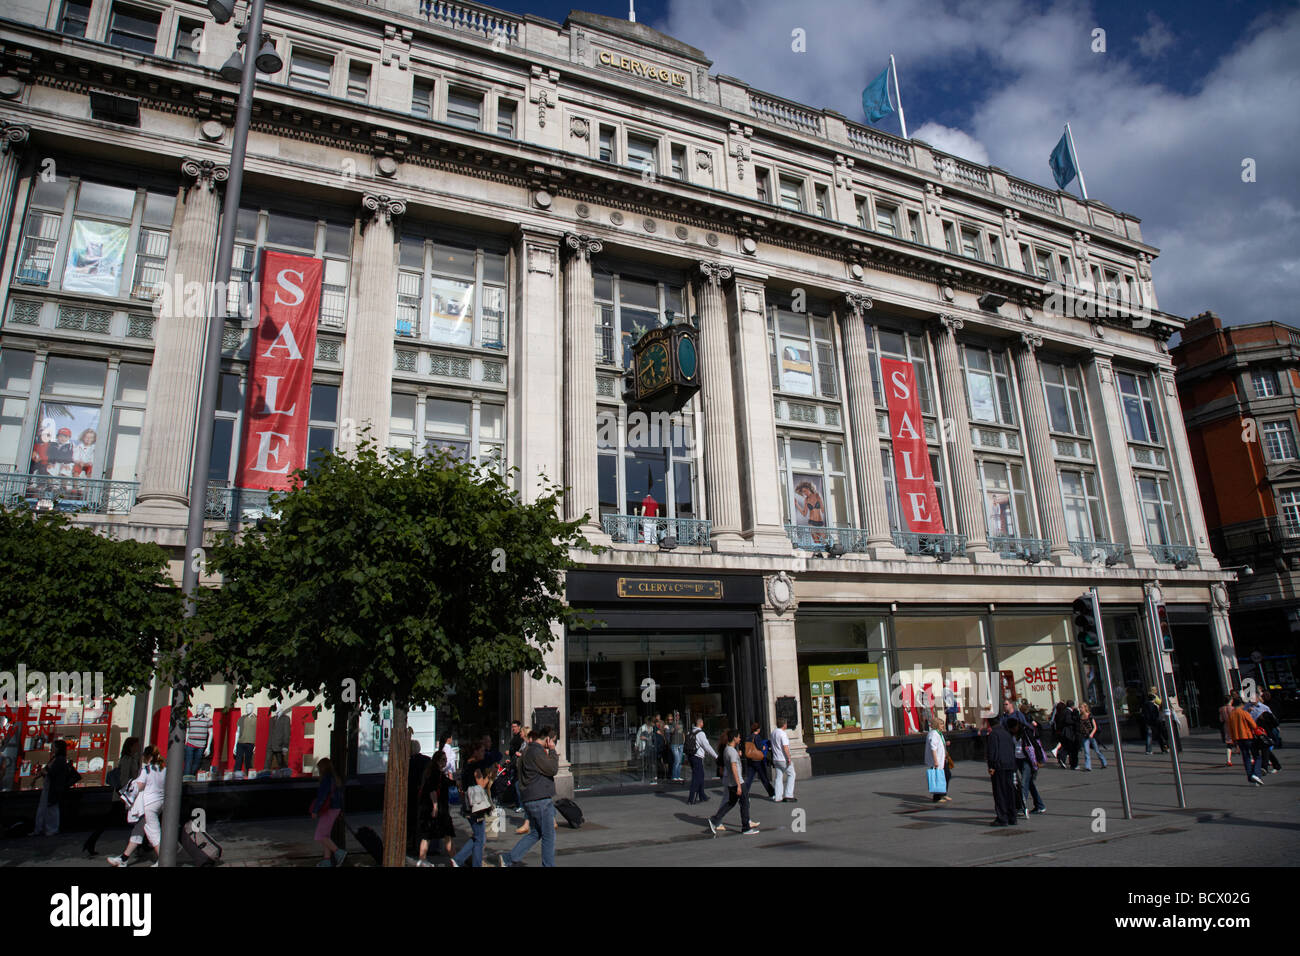 clery and co clerys department store oconnell street dublin city centre republic of ireland - Stock Image